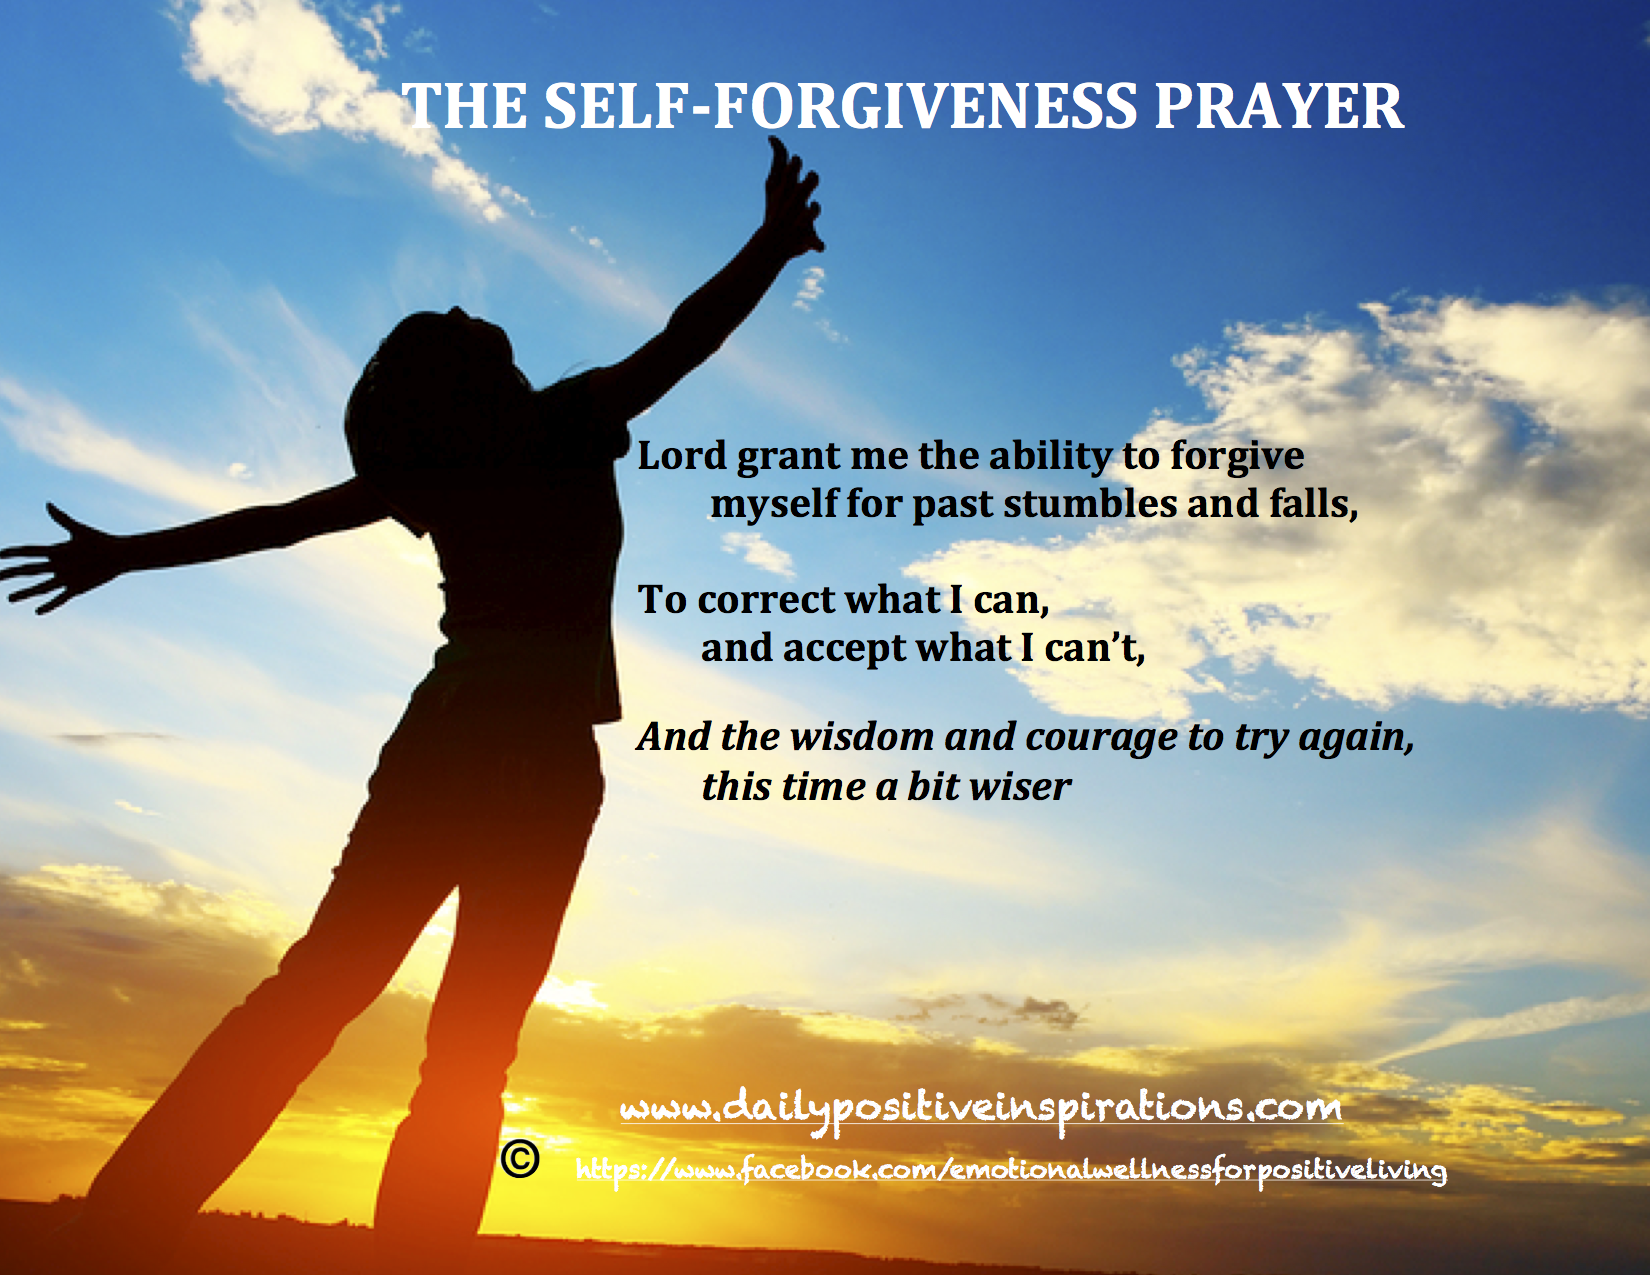 Forgiveness Quotes: Self-Forgiveness Prayer For More Daily Positive